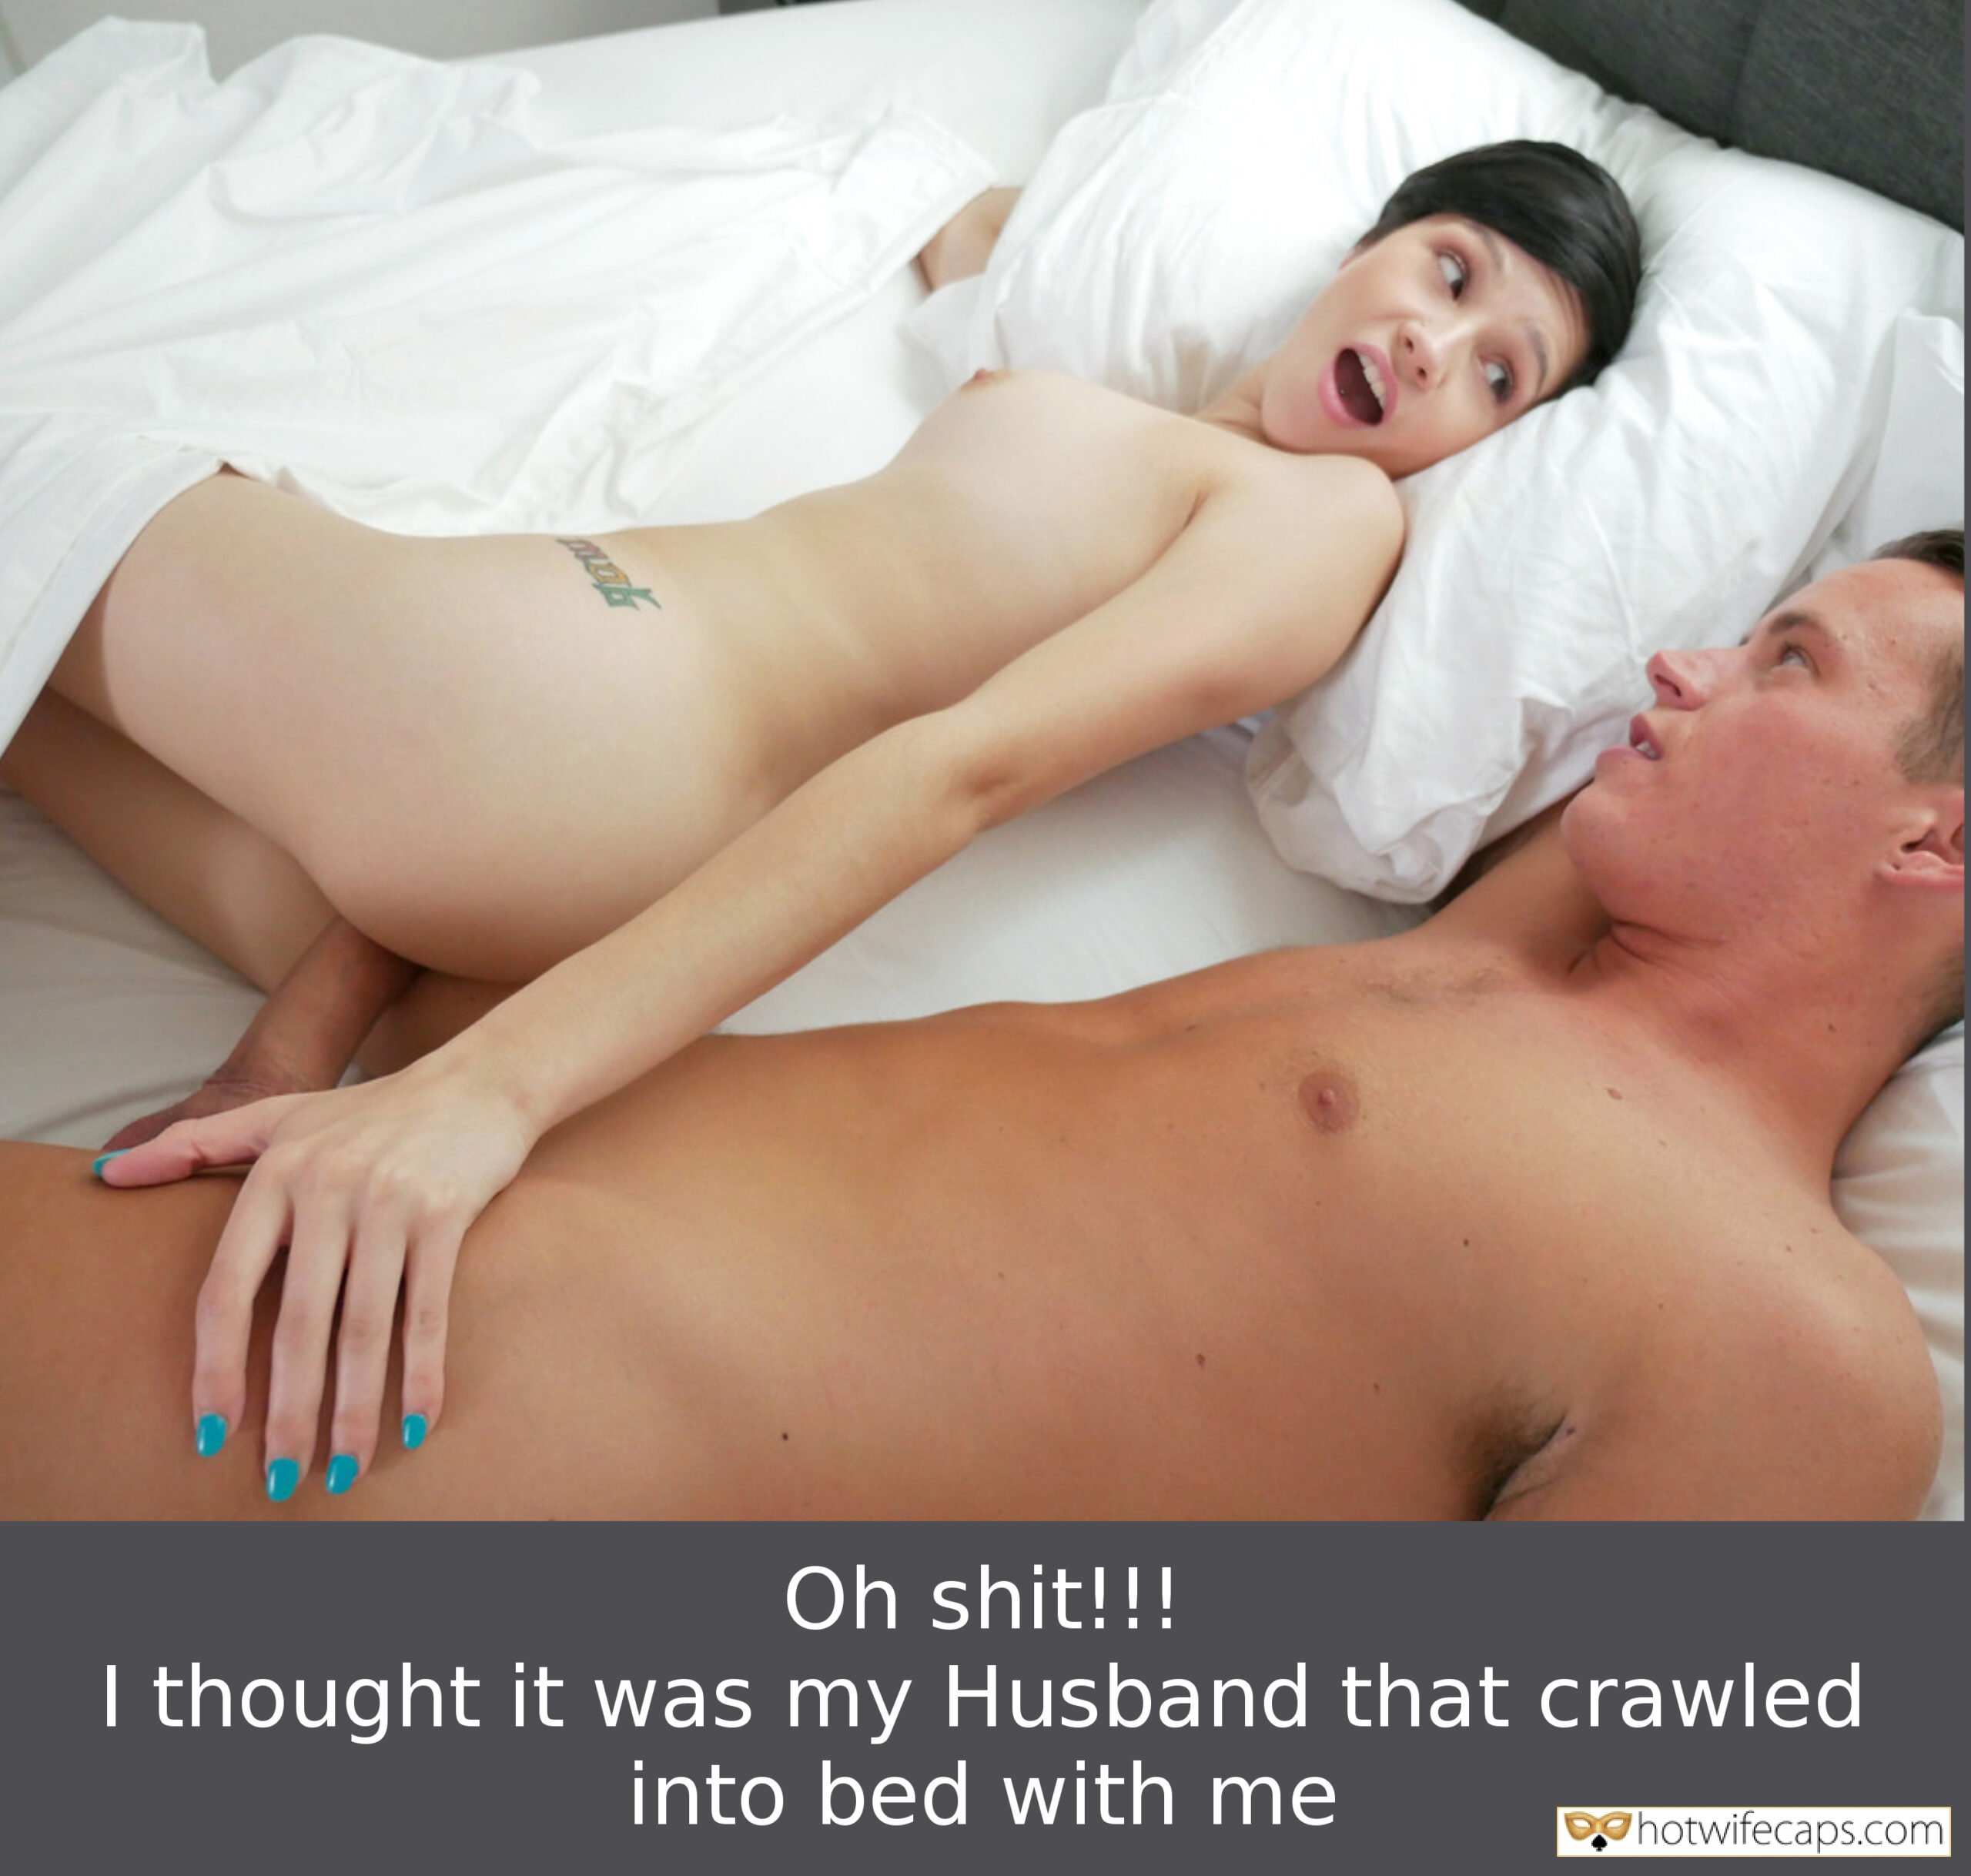 Friends Cheating hotwife caption: Oh shit!!! I thought it was my Husband that crawled into bed with me Husband's Friend Surprised Naked Wife in Bed